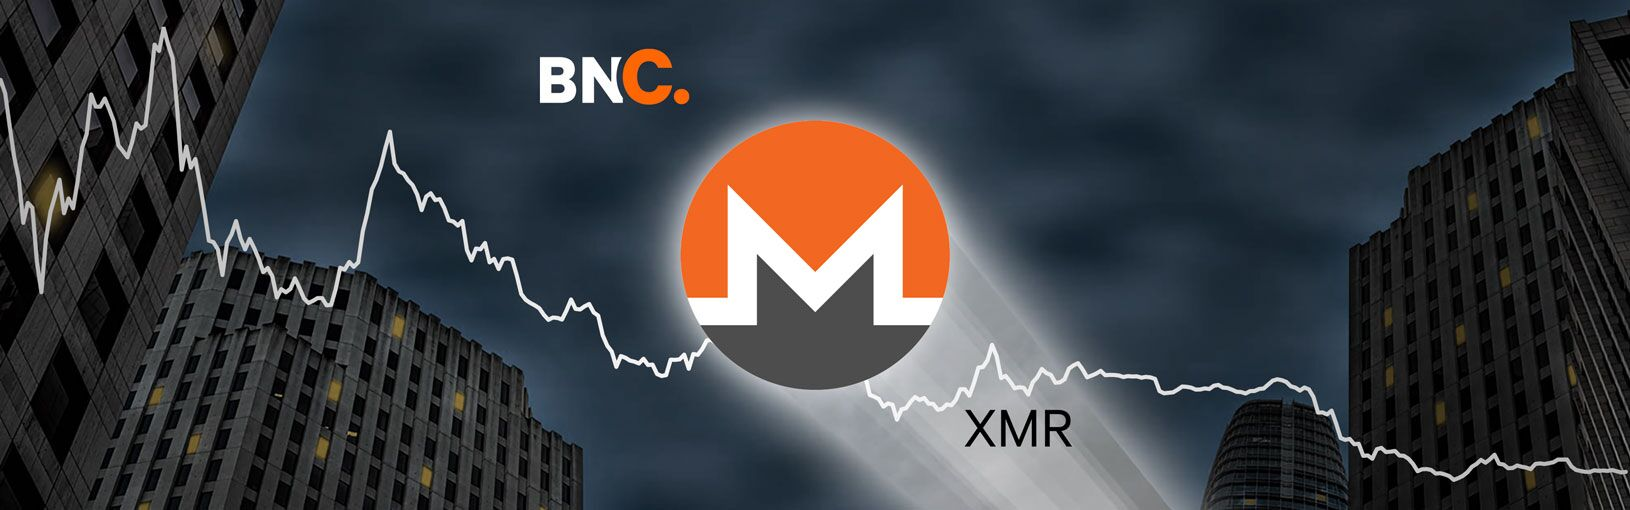 Monero Price Analysis - Mining malware on the rise » Brave